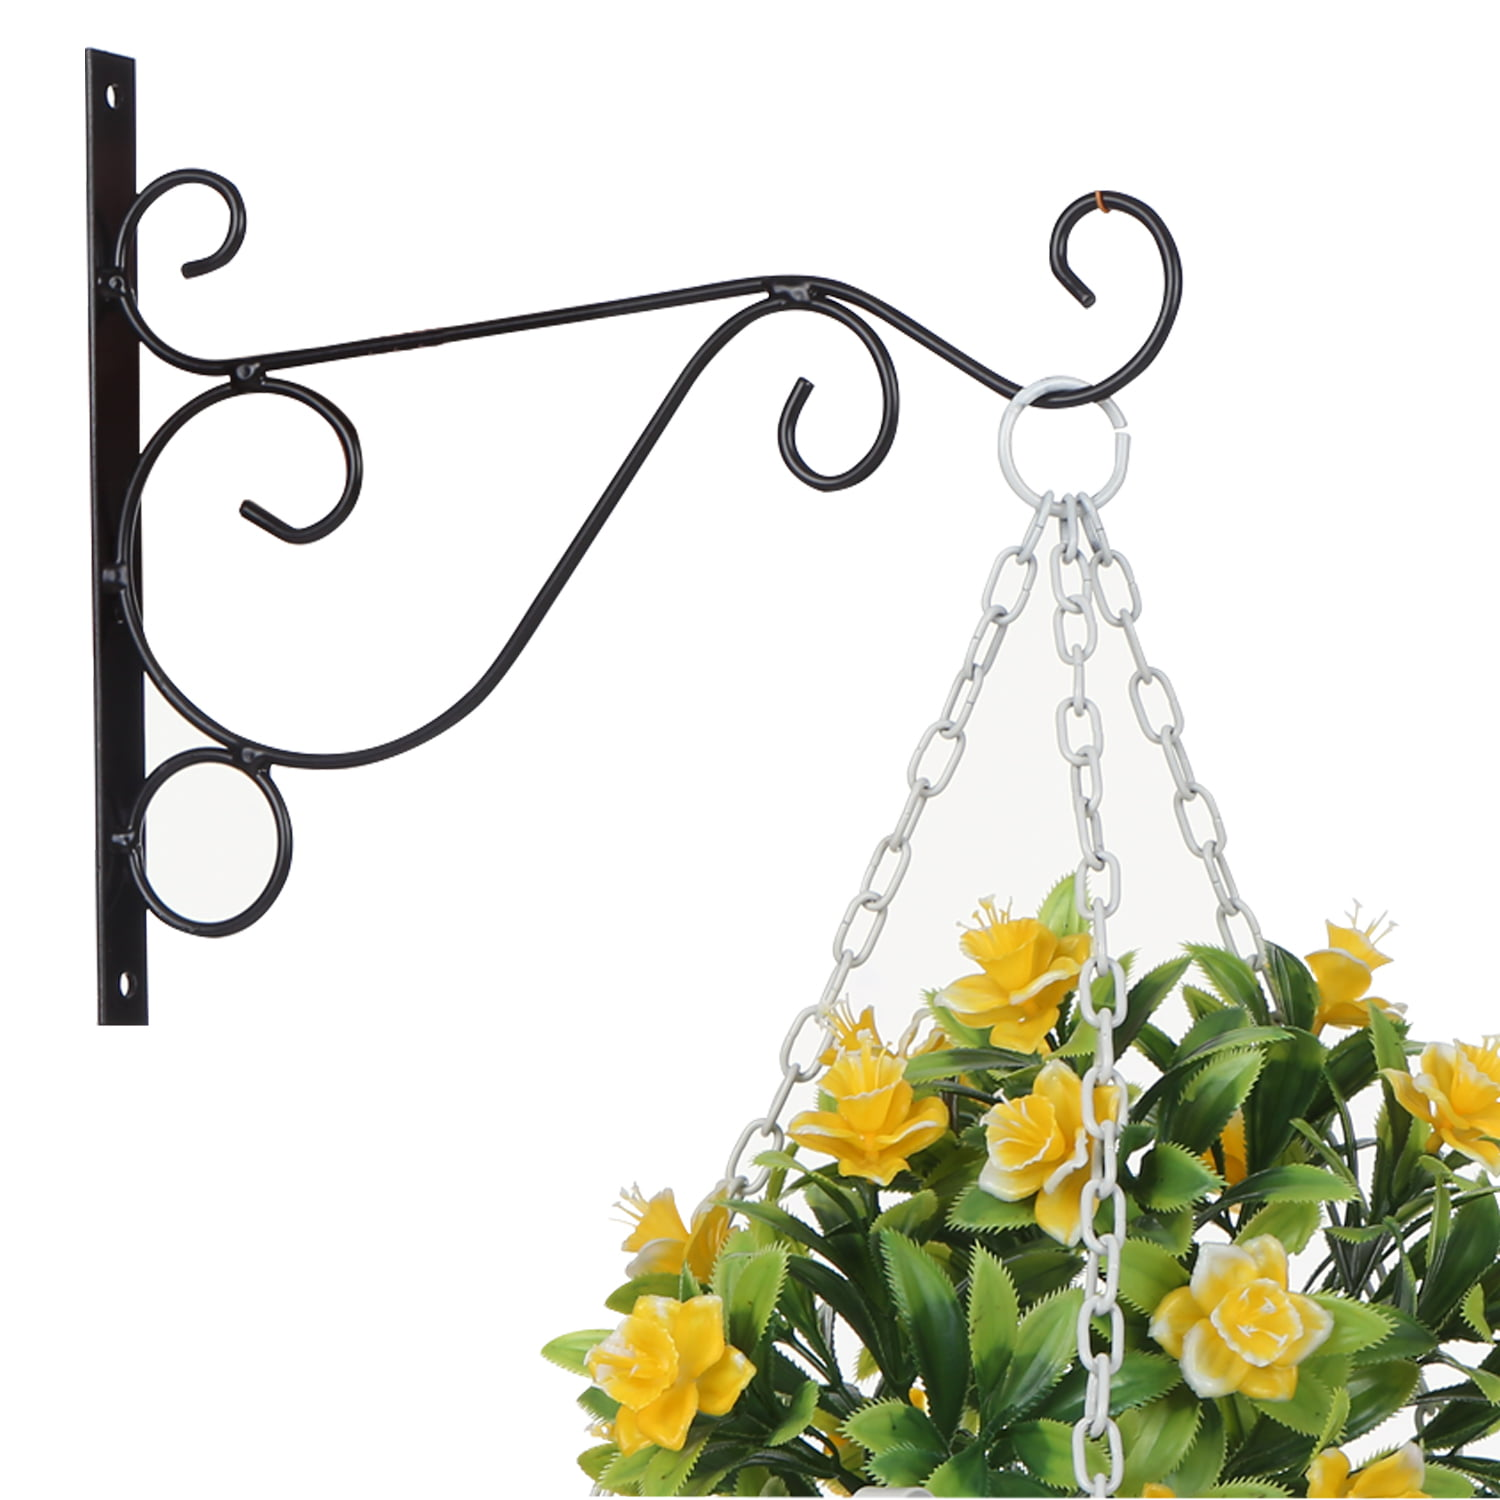 Plant Hanging Hooks Decorative Iron Wall Hooks Plant Hanging Hangers For Outdoor Indoor Planter Bird Feeder Lanterns Wind Chimes With Screws Walmart Canada